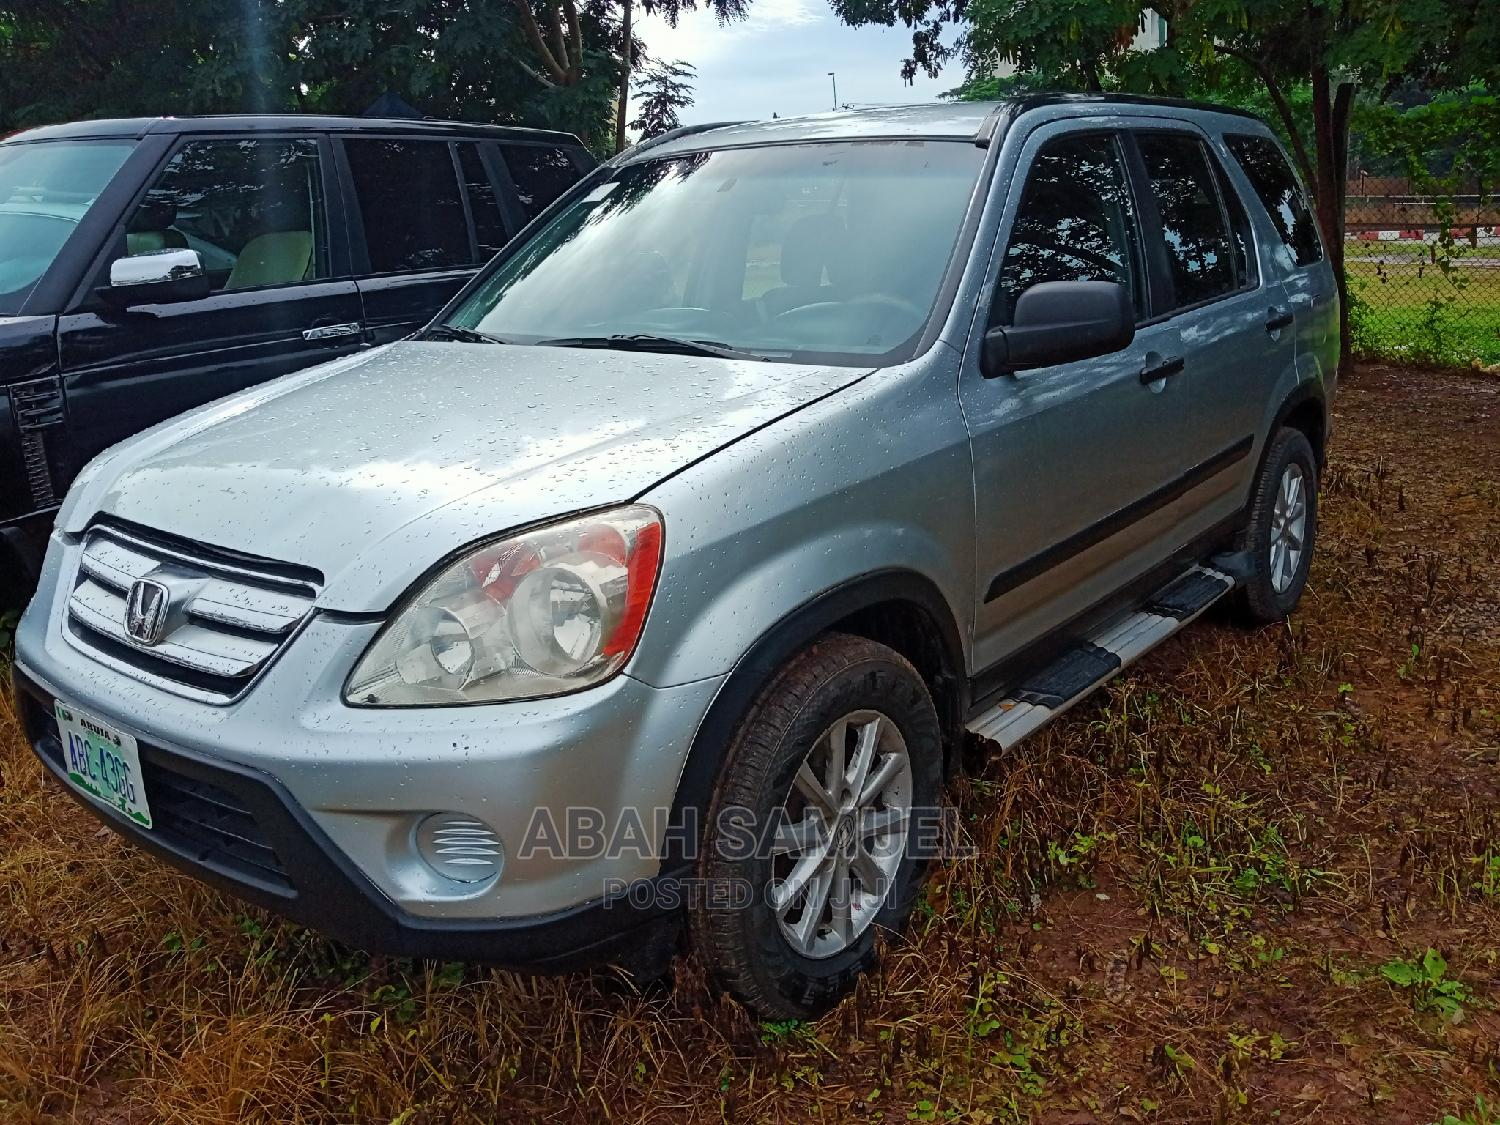 Honda CR-V 2004 2.0i ES Automatic Silver   Cars for sale in Central Business District, Abuja (FCT) State, Nigeria